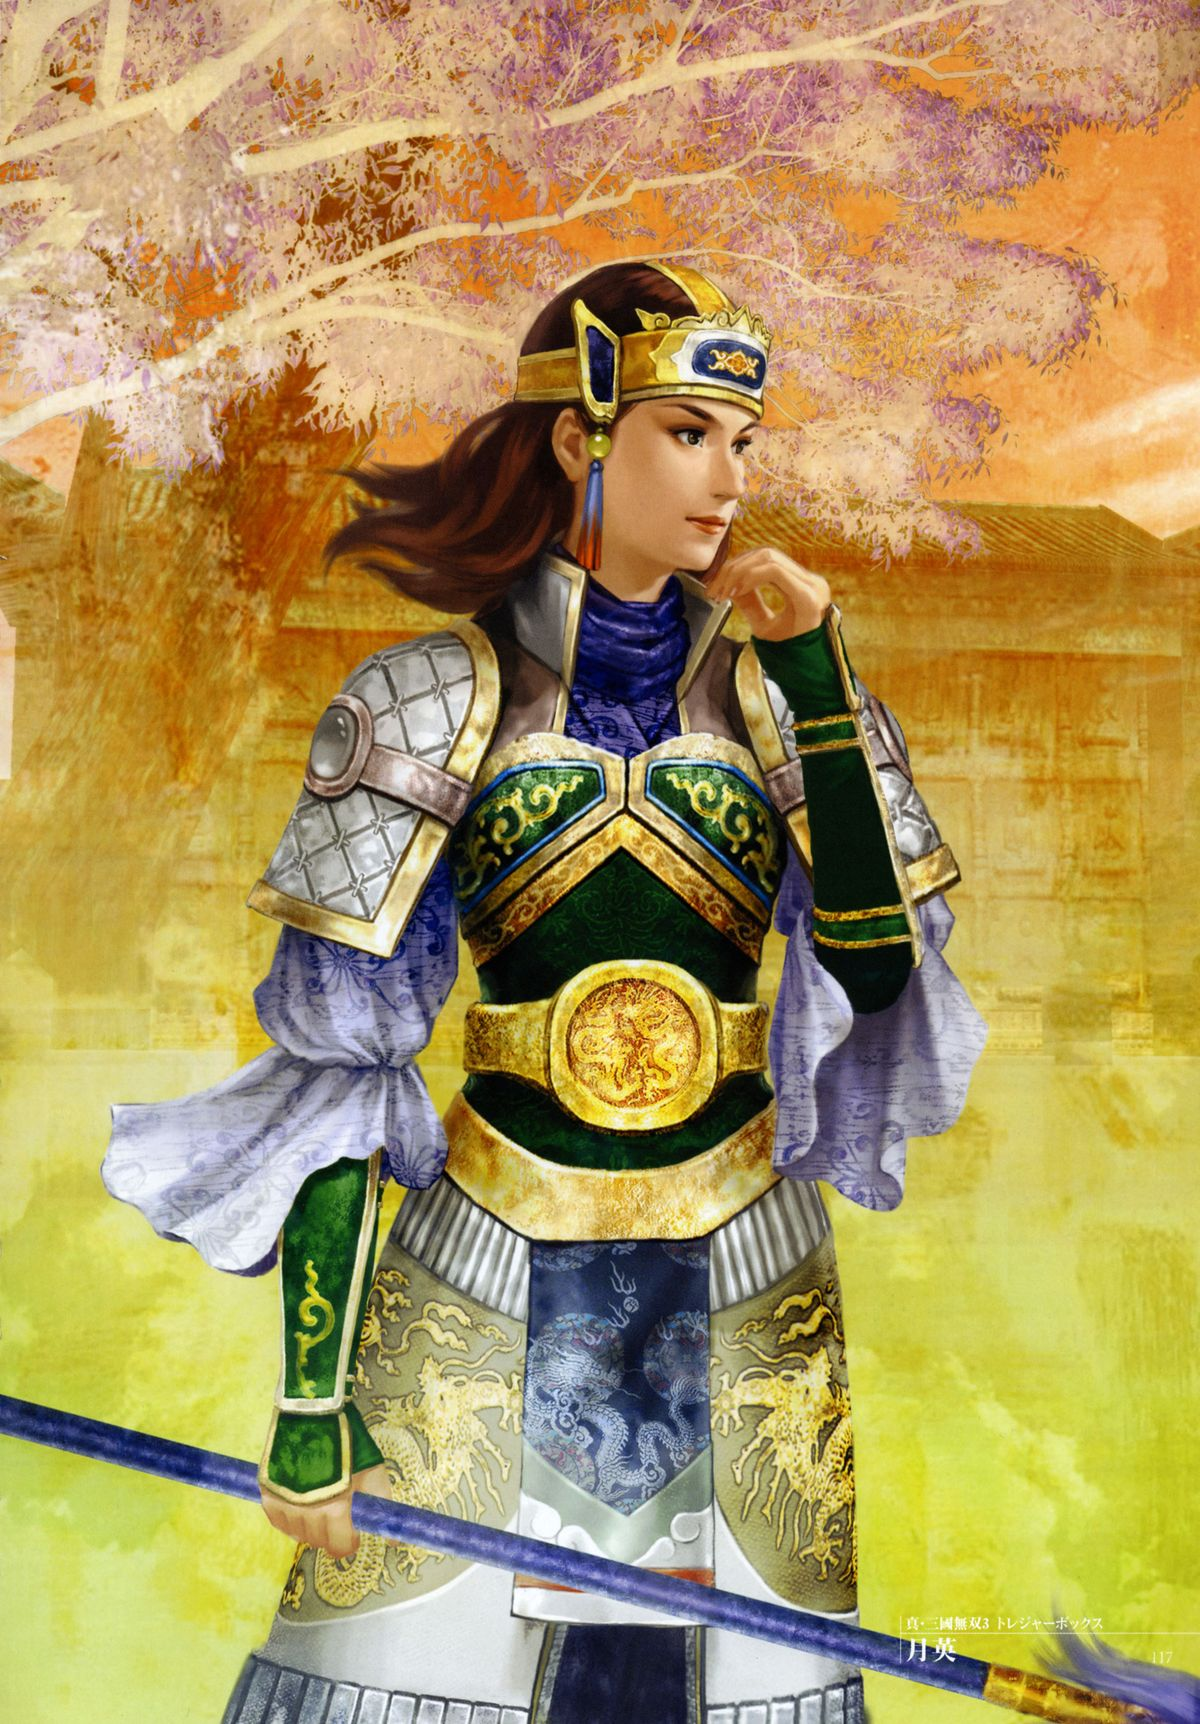 Dynasty warriors p o r n porncraft gallery